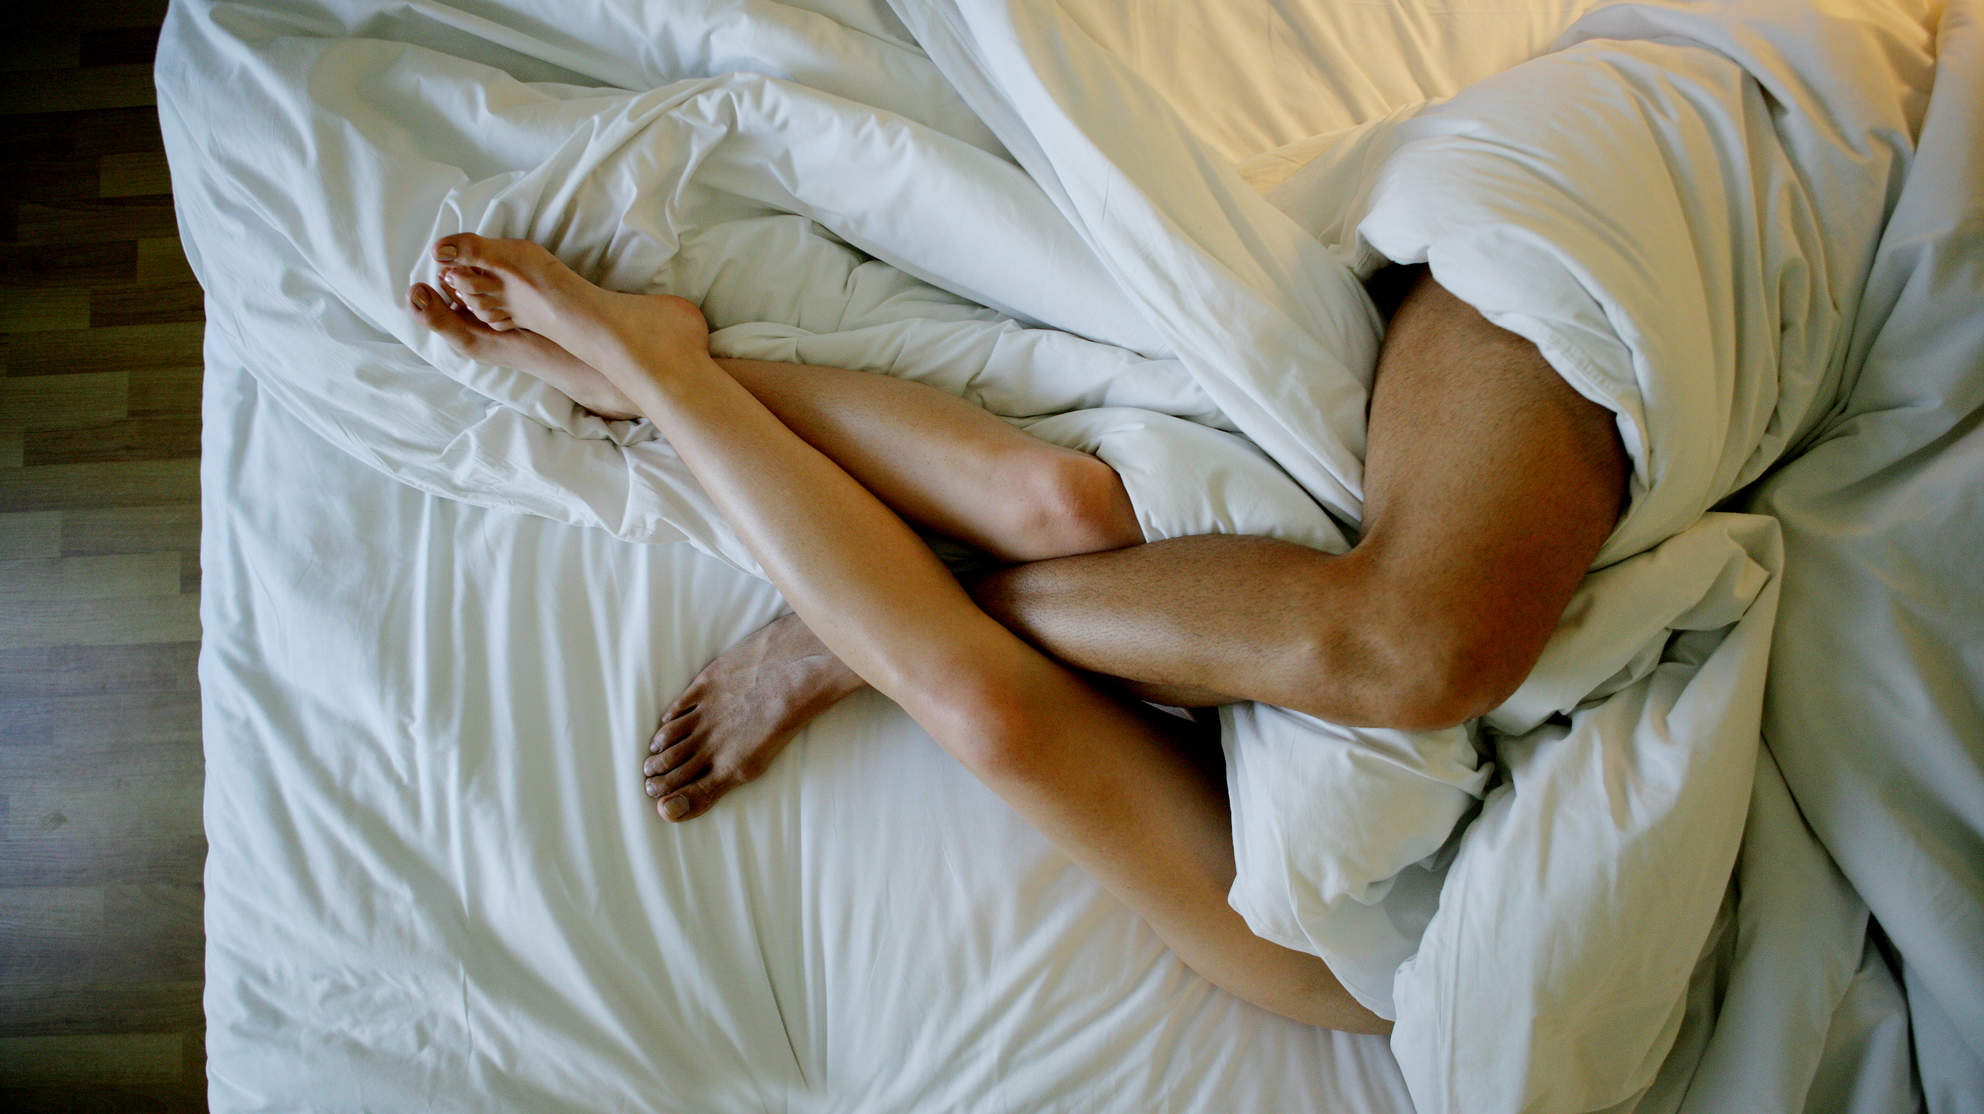 couple-bed-sex-std-gonorrhea